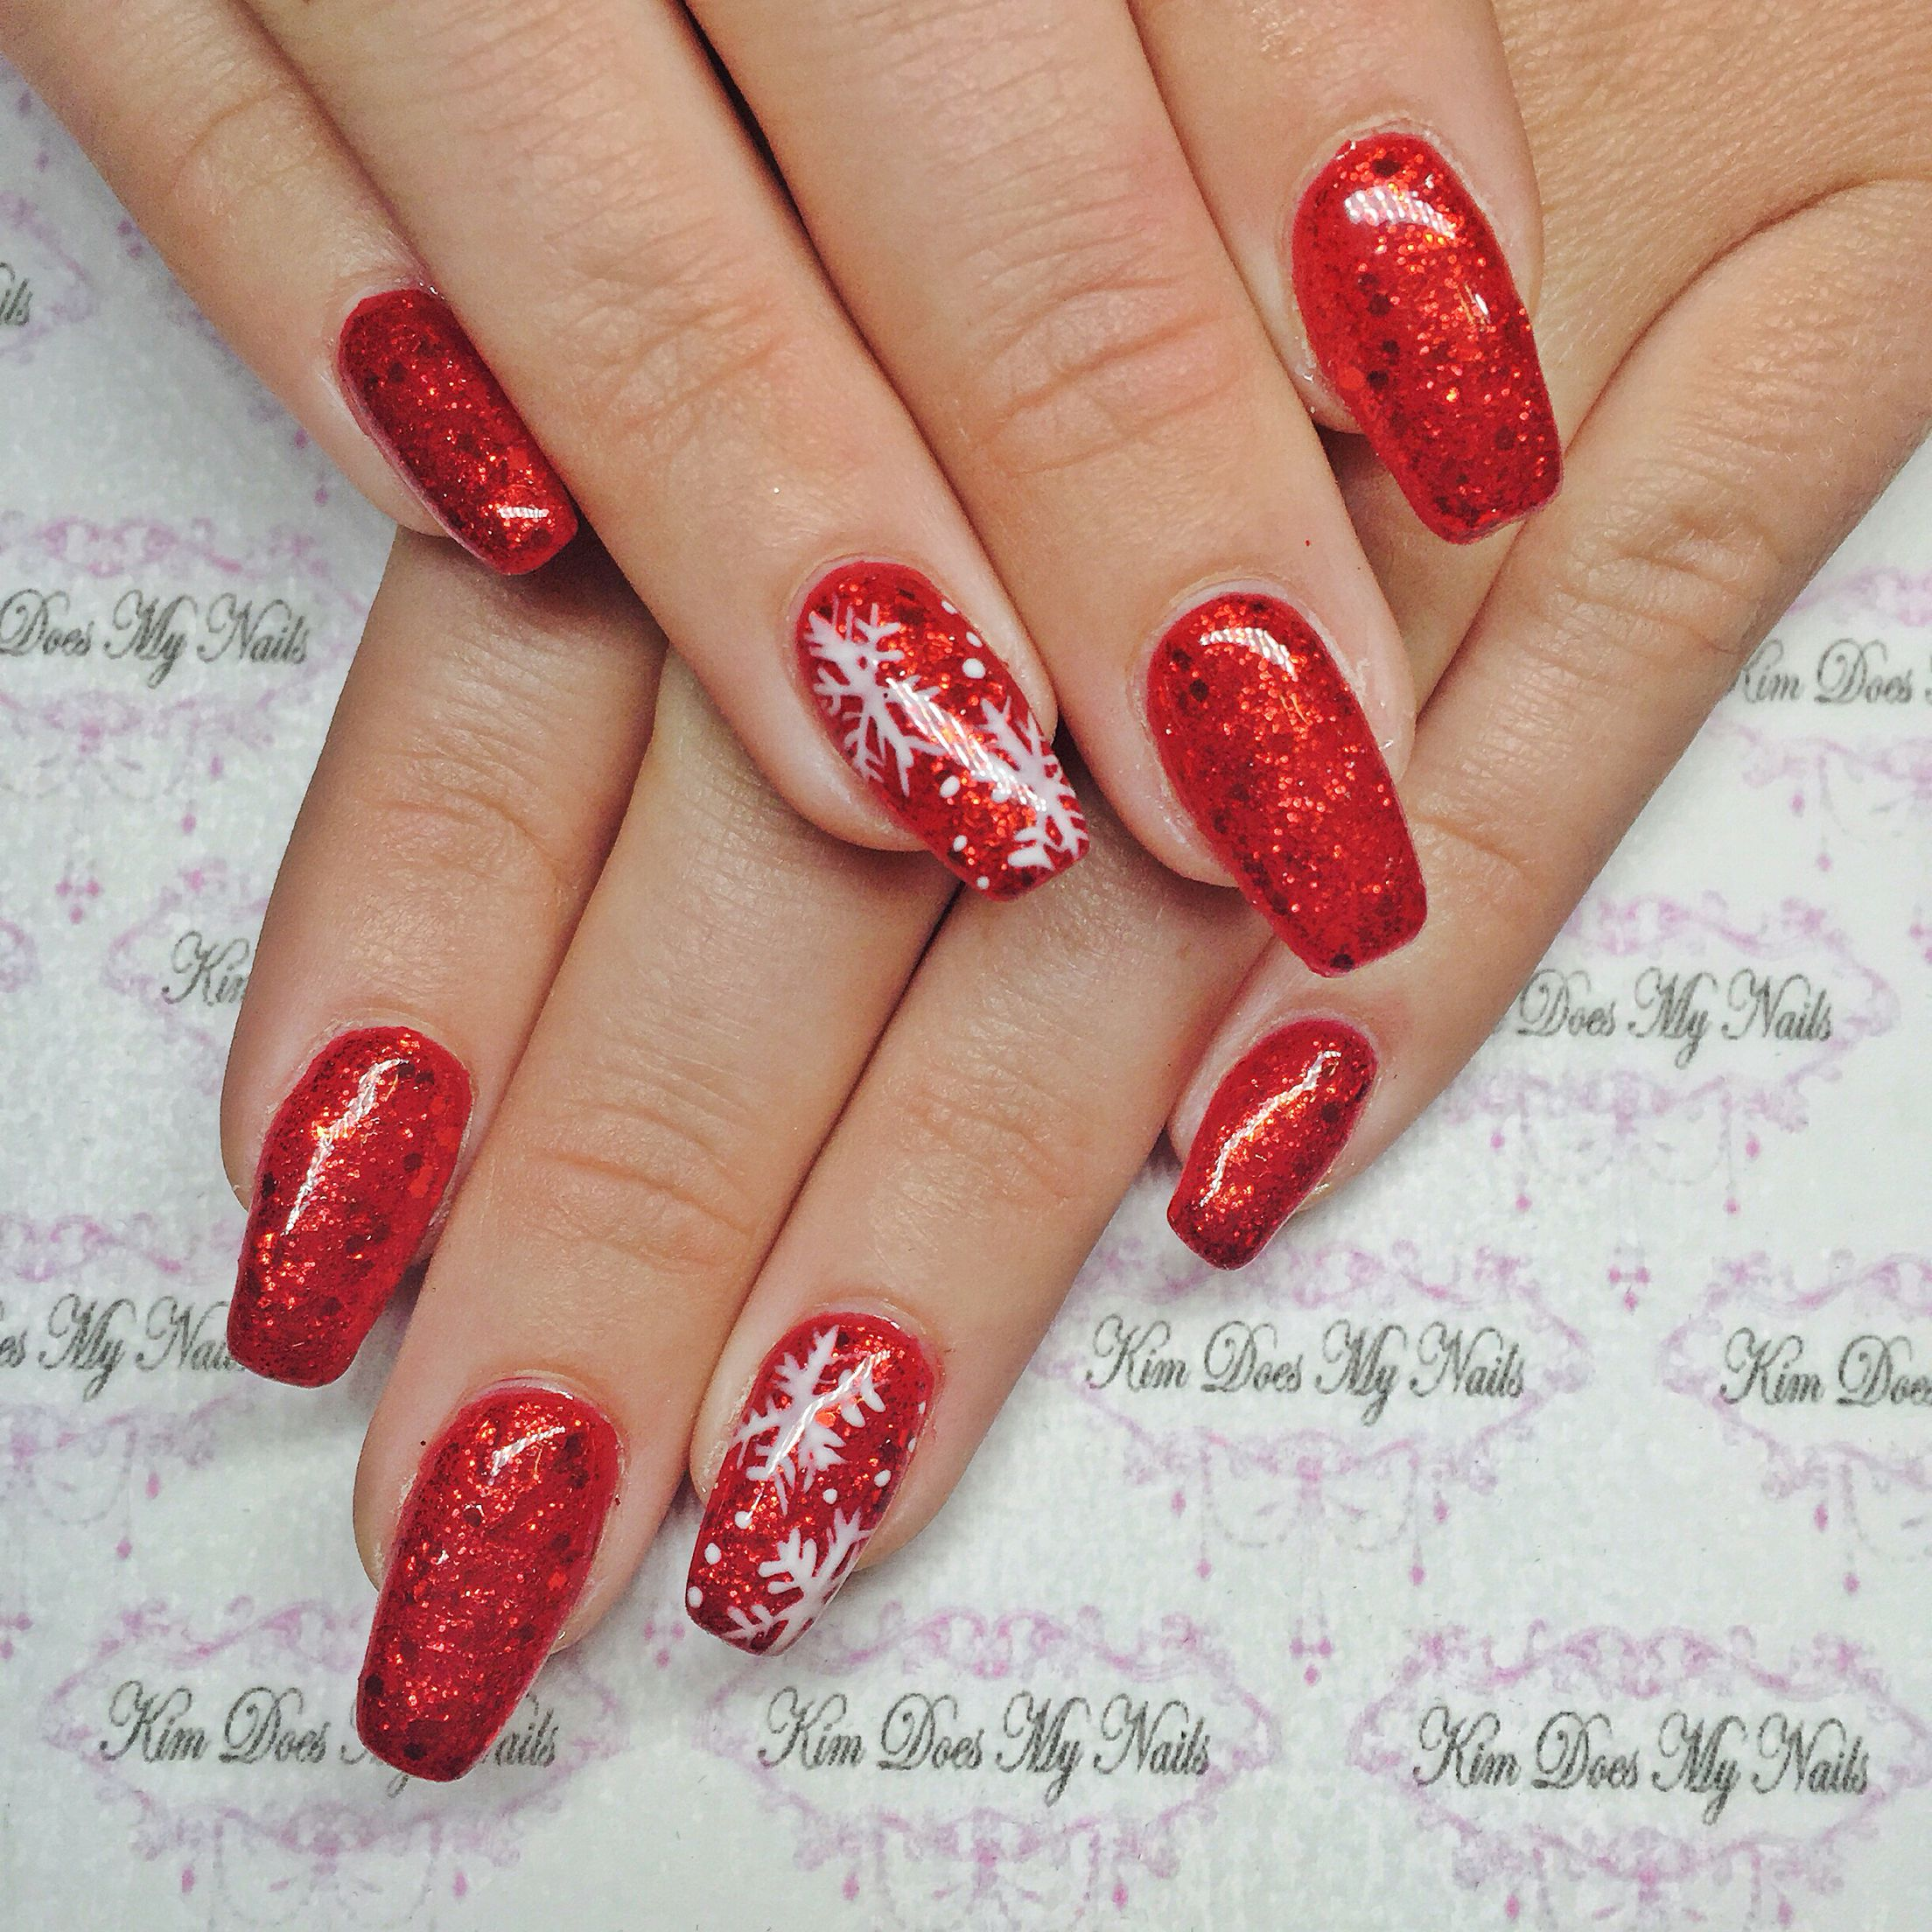 Little red sled with snowflake coffin nails #kimdoesmynails